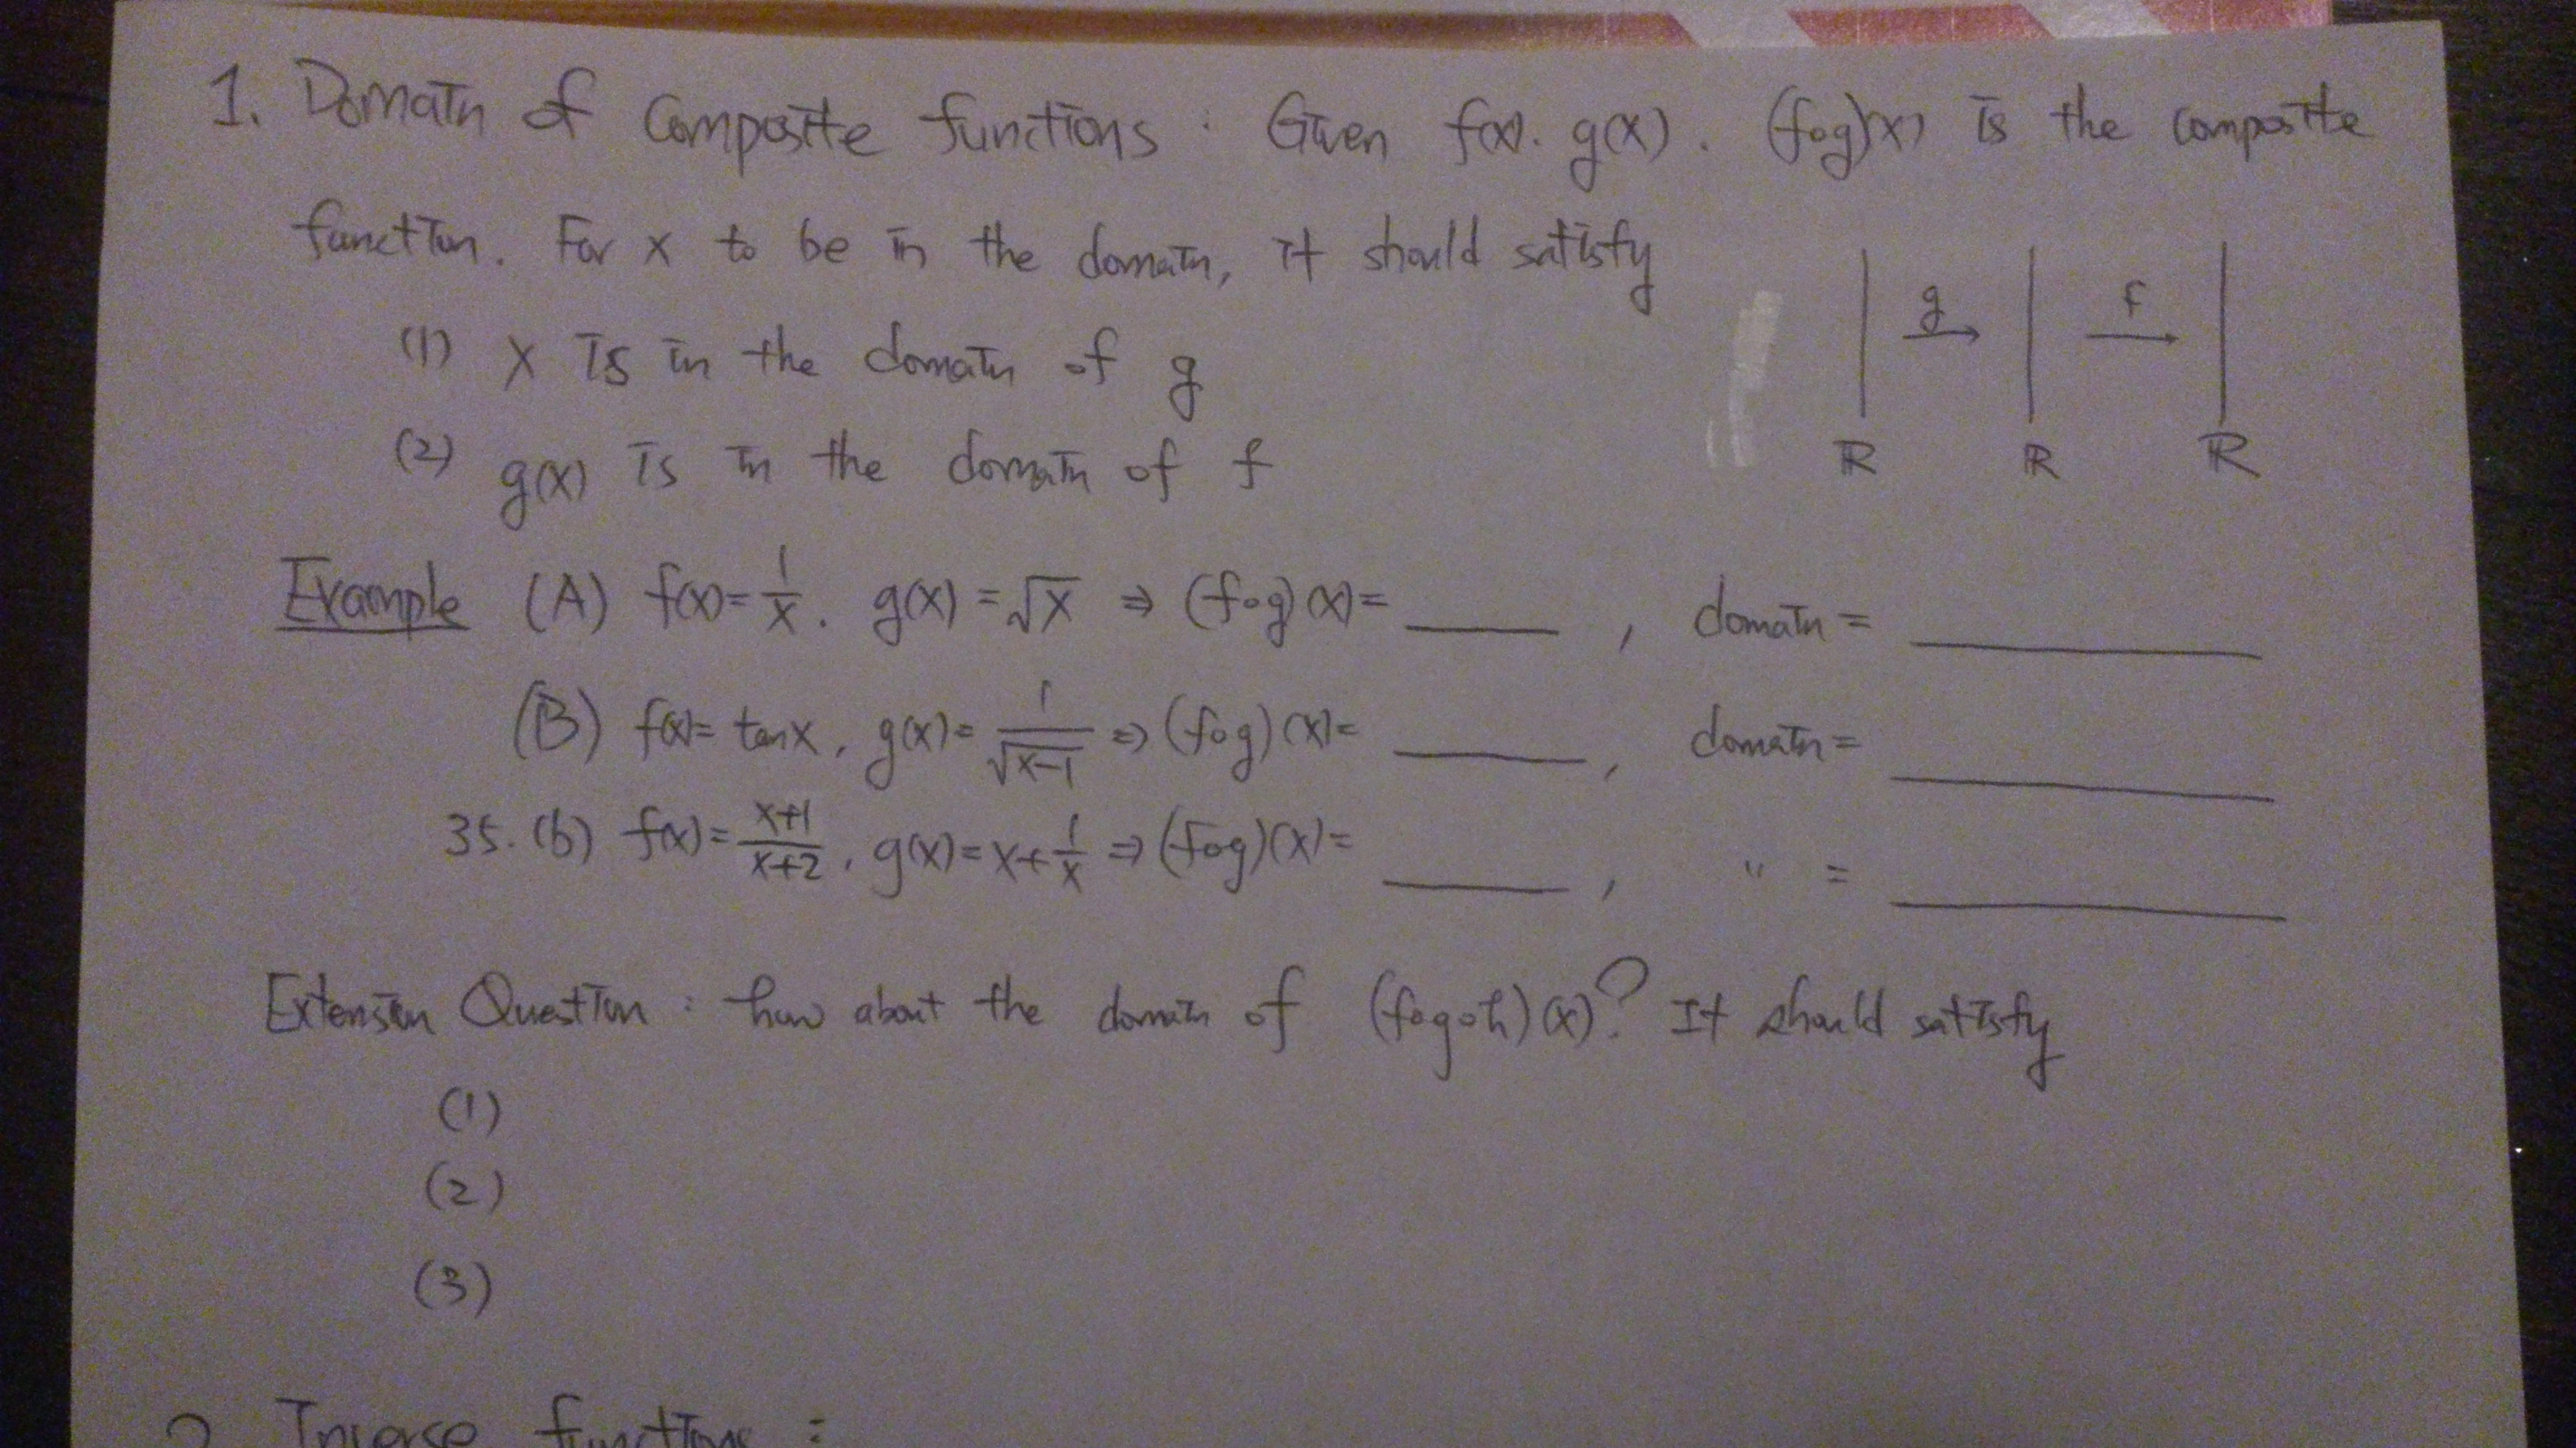 11th grade math problems 11th grade math is a strong foundation for higher level mathematics as now stress is laid on the application part completely along with more complex topics that starts from here.